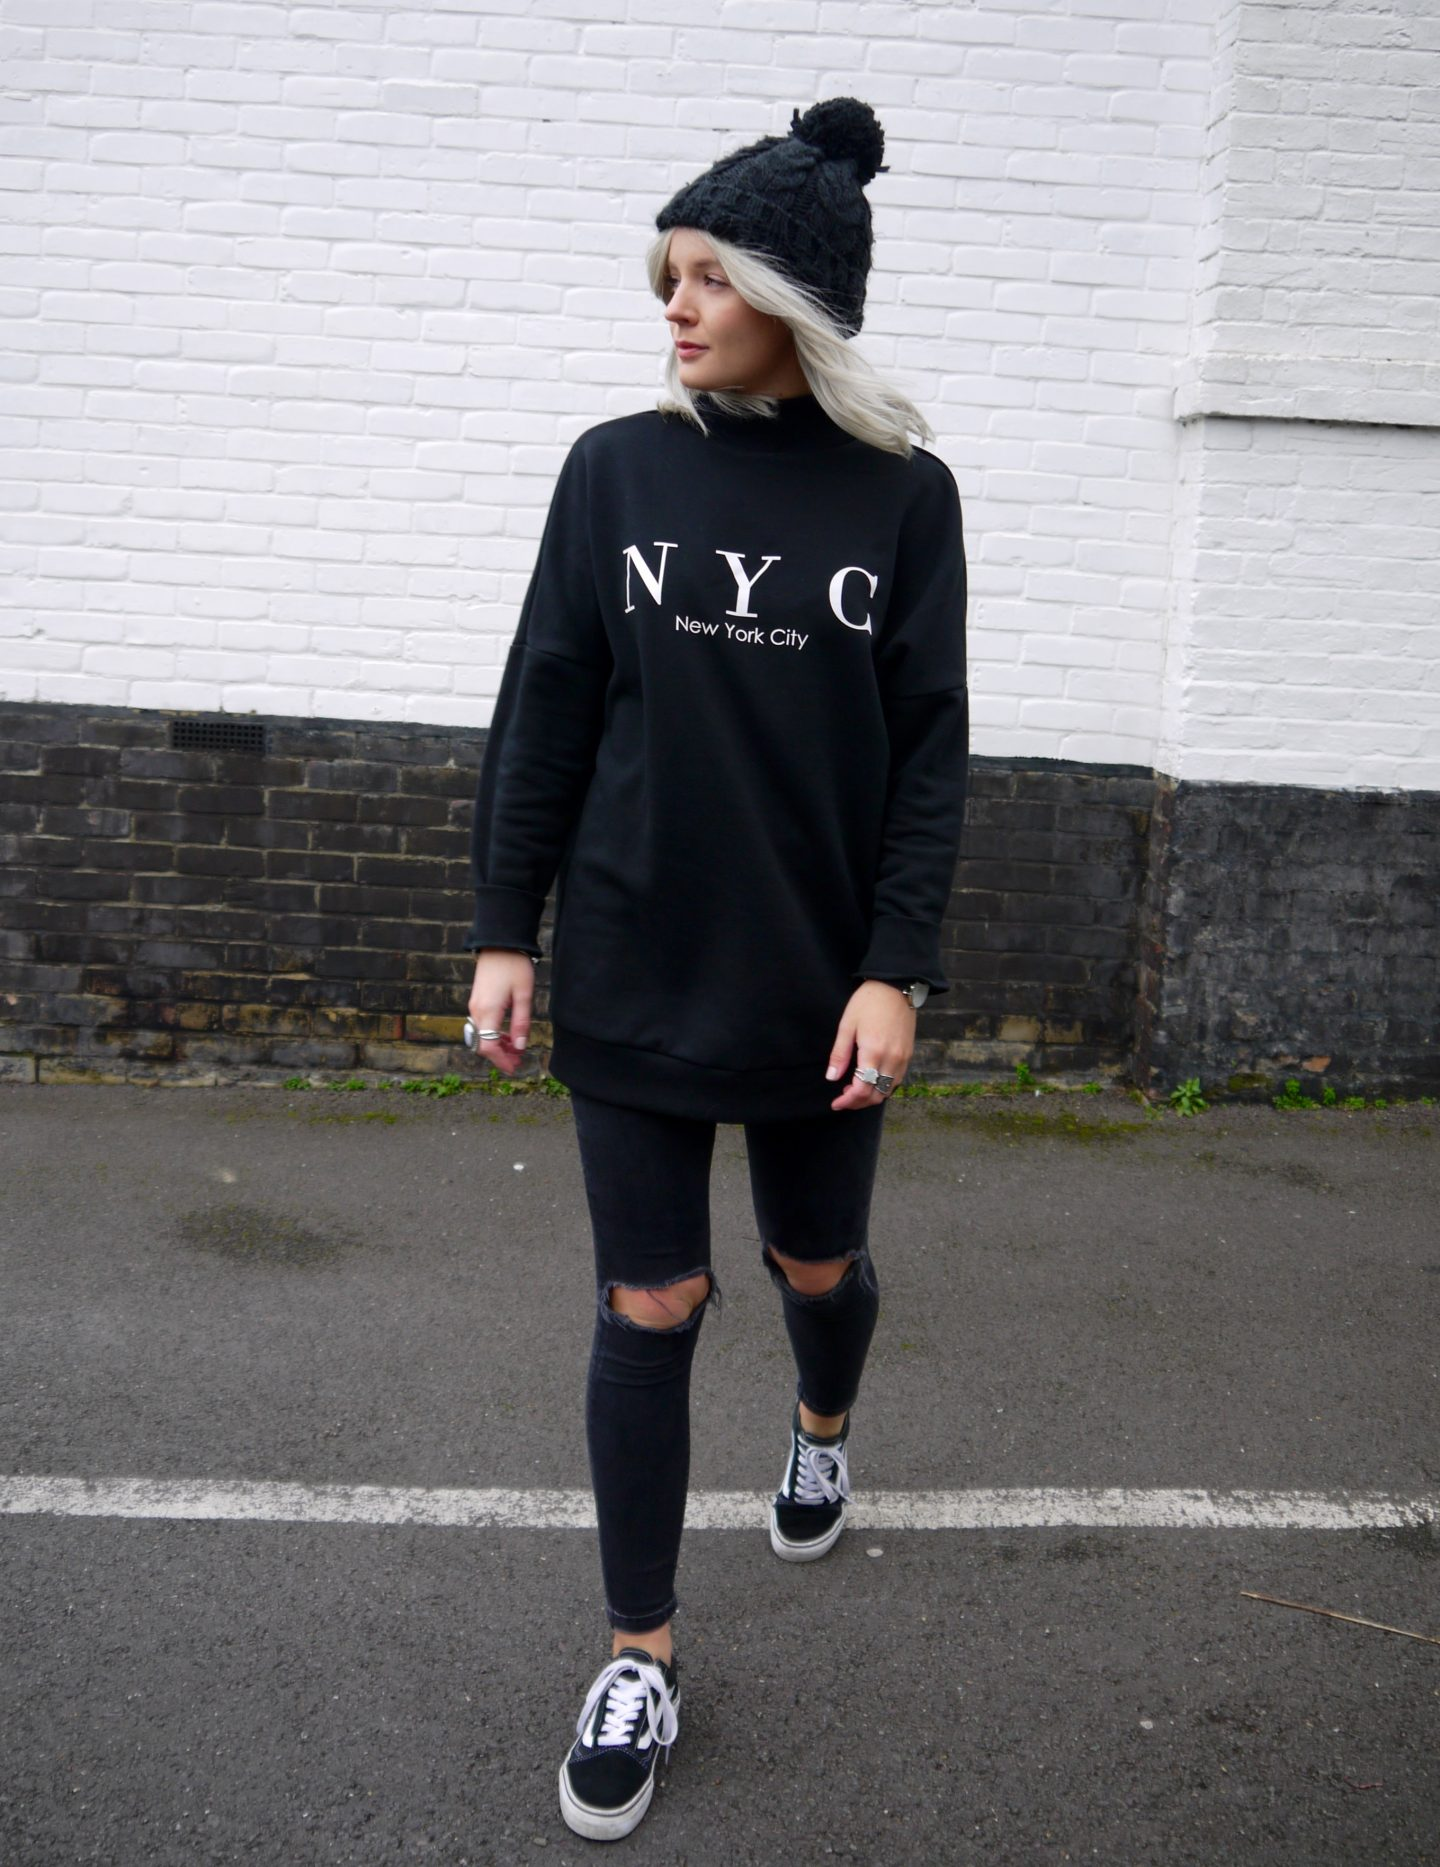 all black outfit, niece jumper, h&M black jumper, black old school vans, black bobble hat, street style, laura byrnes, lauras little locket